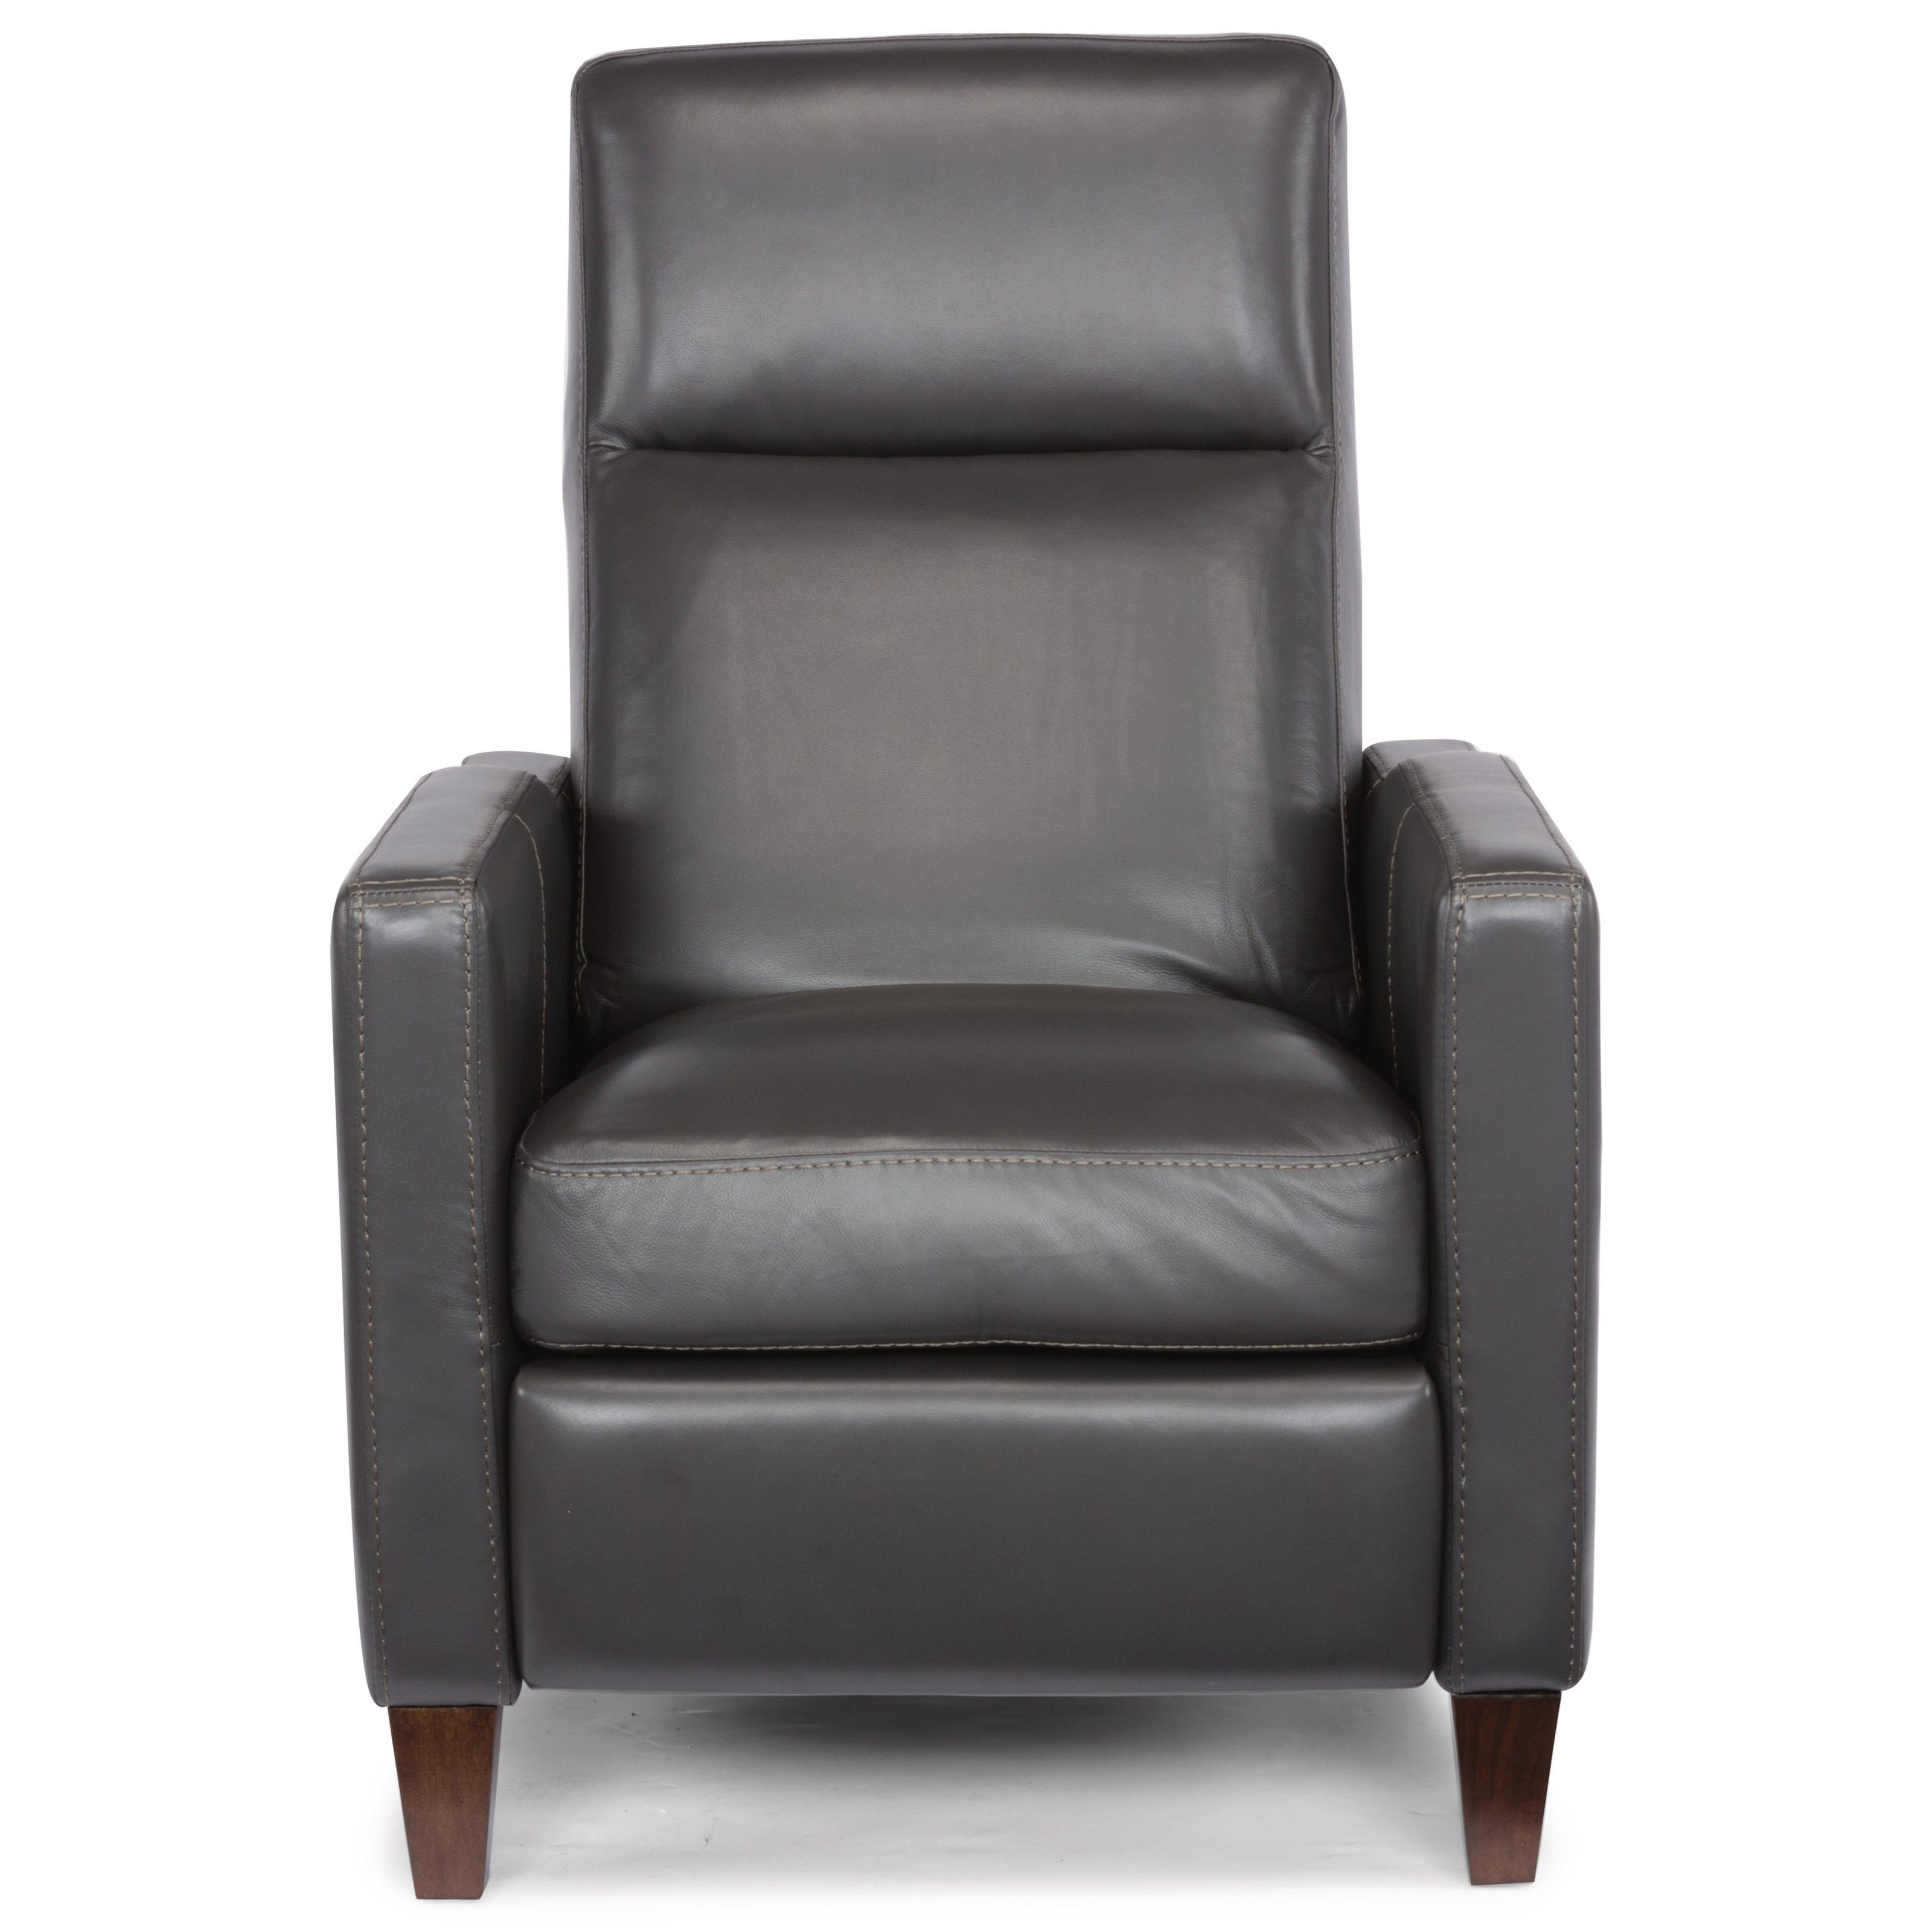 Push-Back High-Leg Recliner